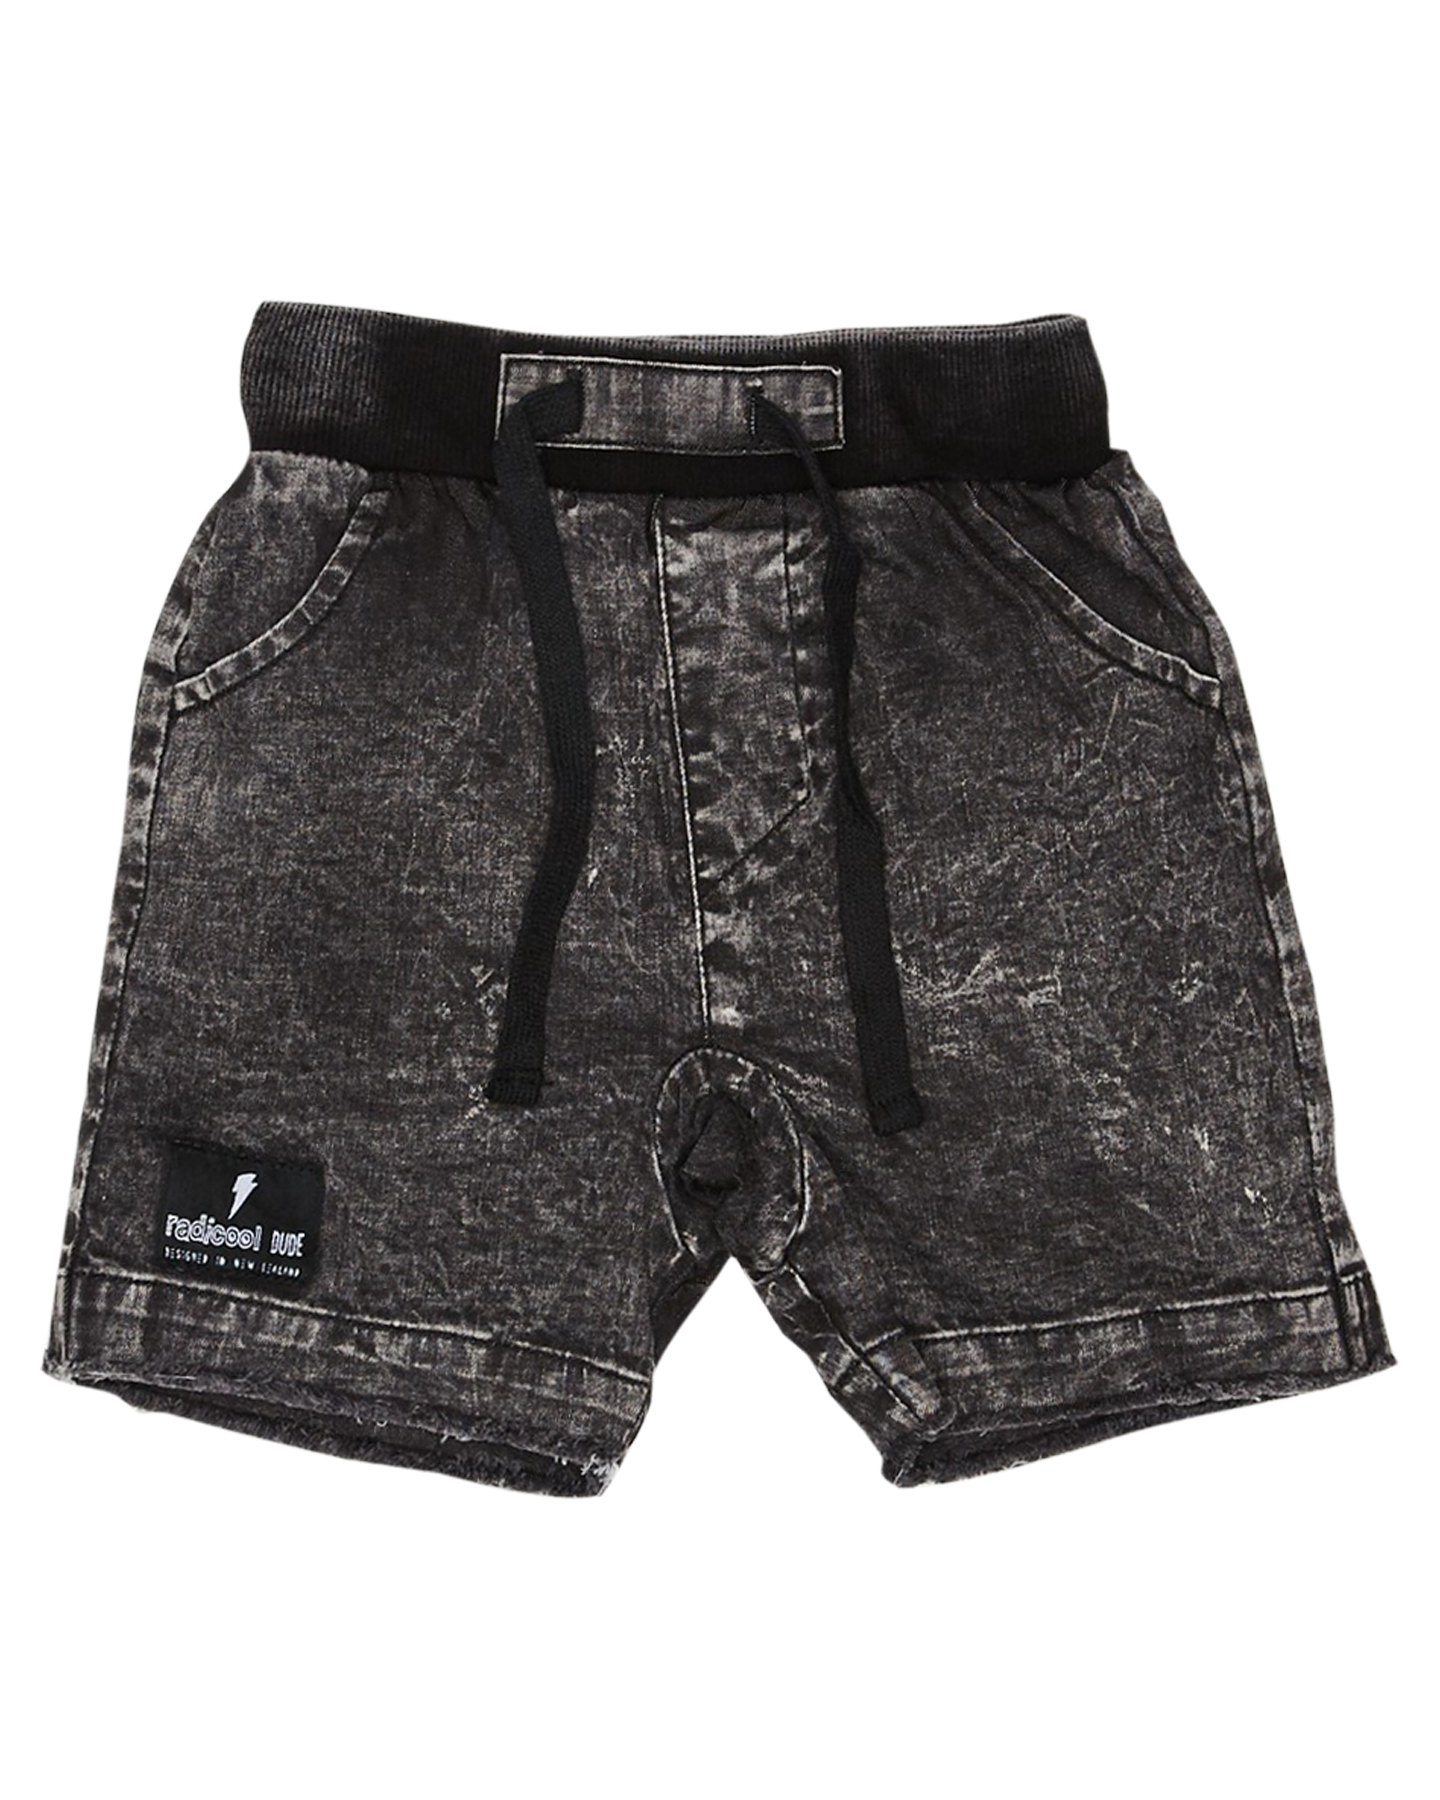 Radicool Dude Boys Yellow Bolt Denim Short - Kids Black Acid Wash